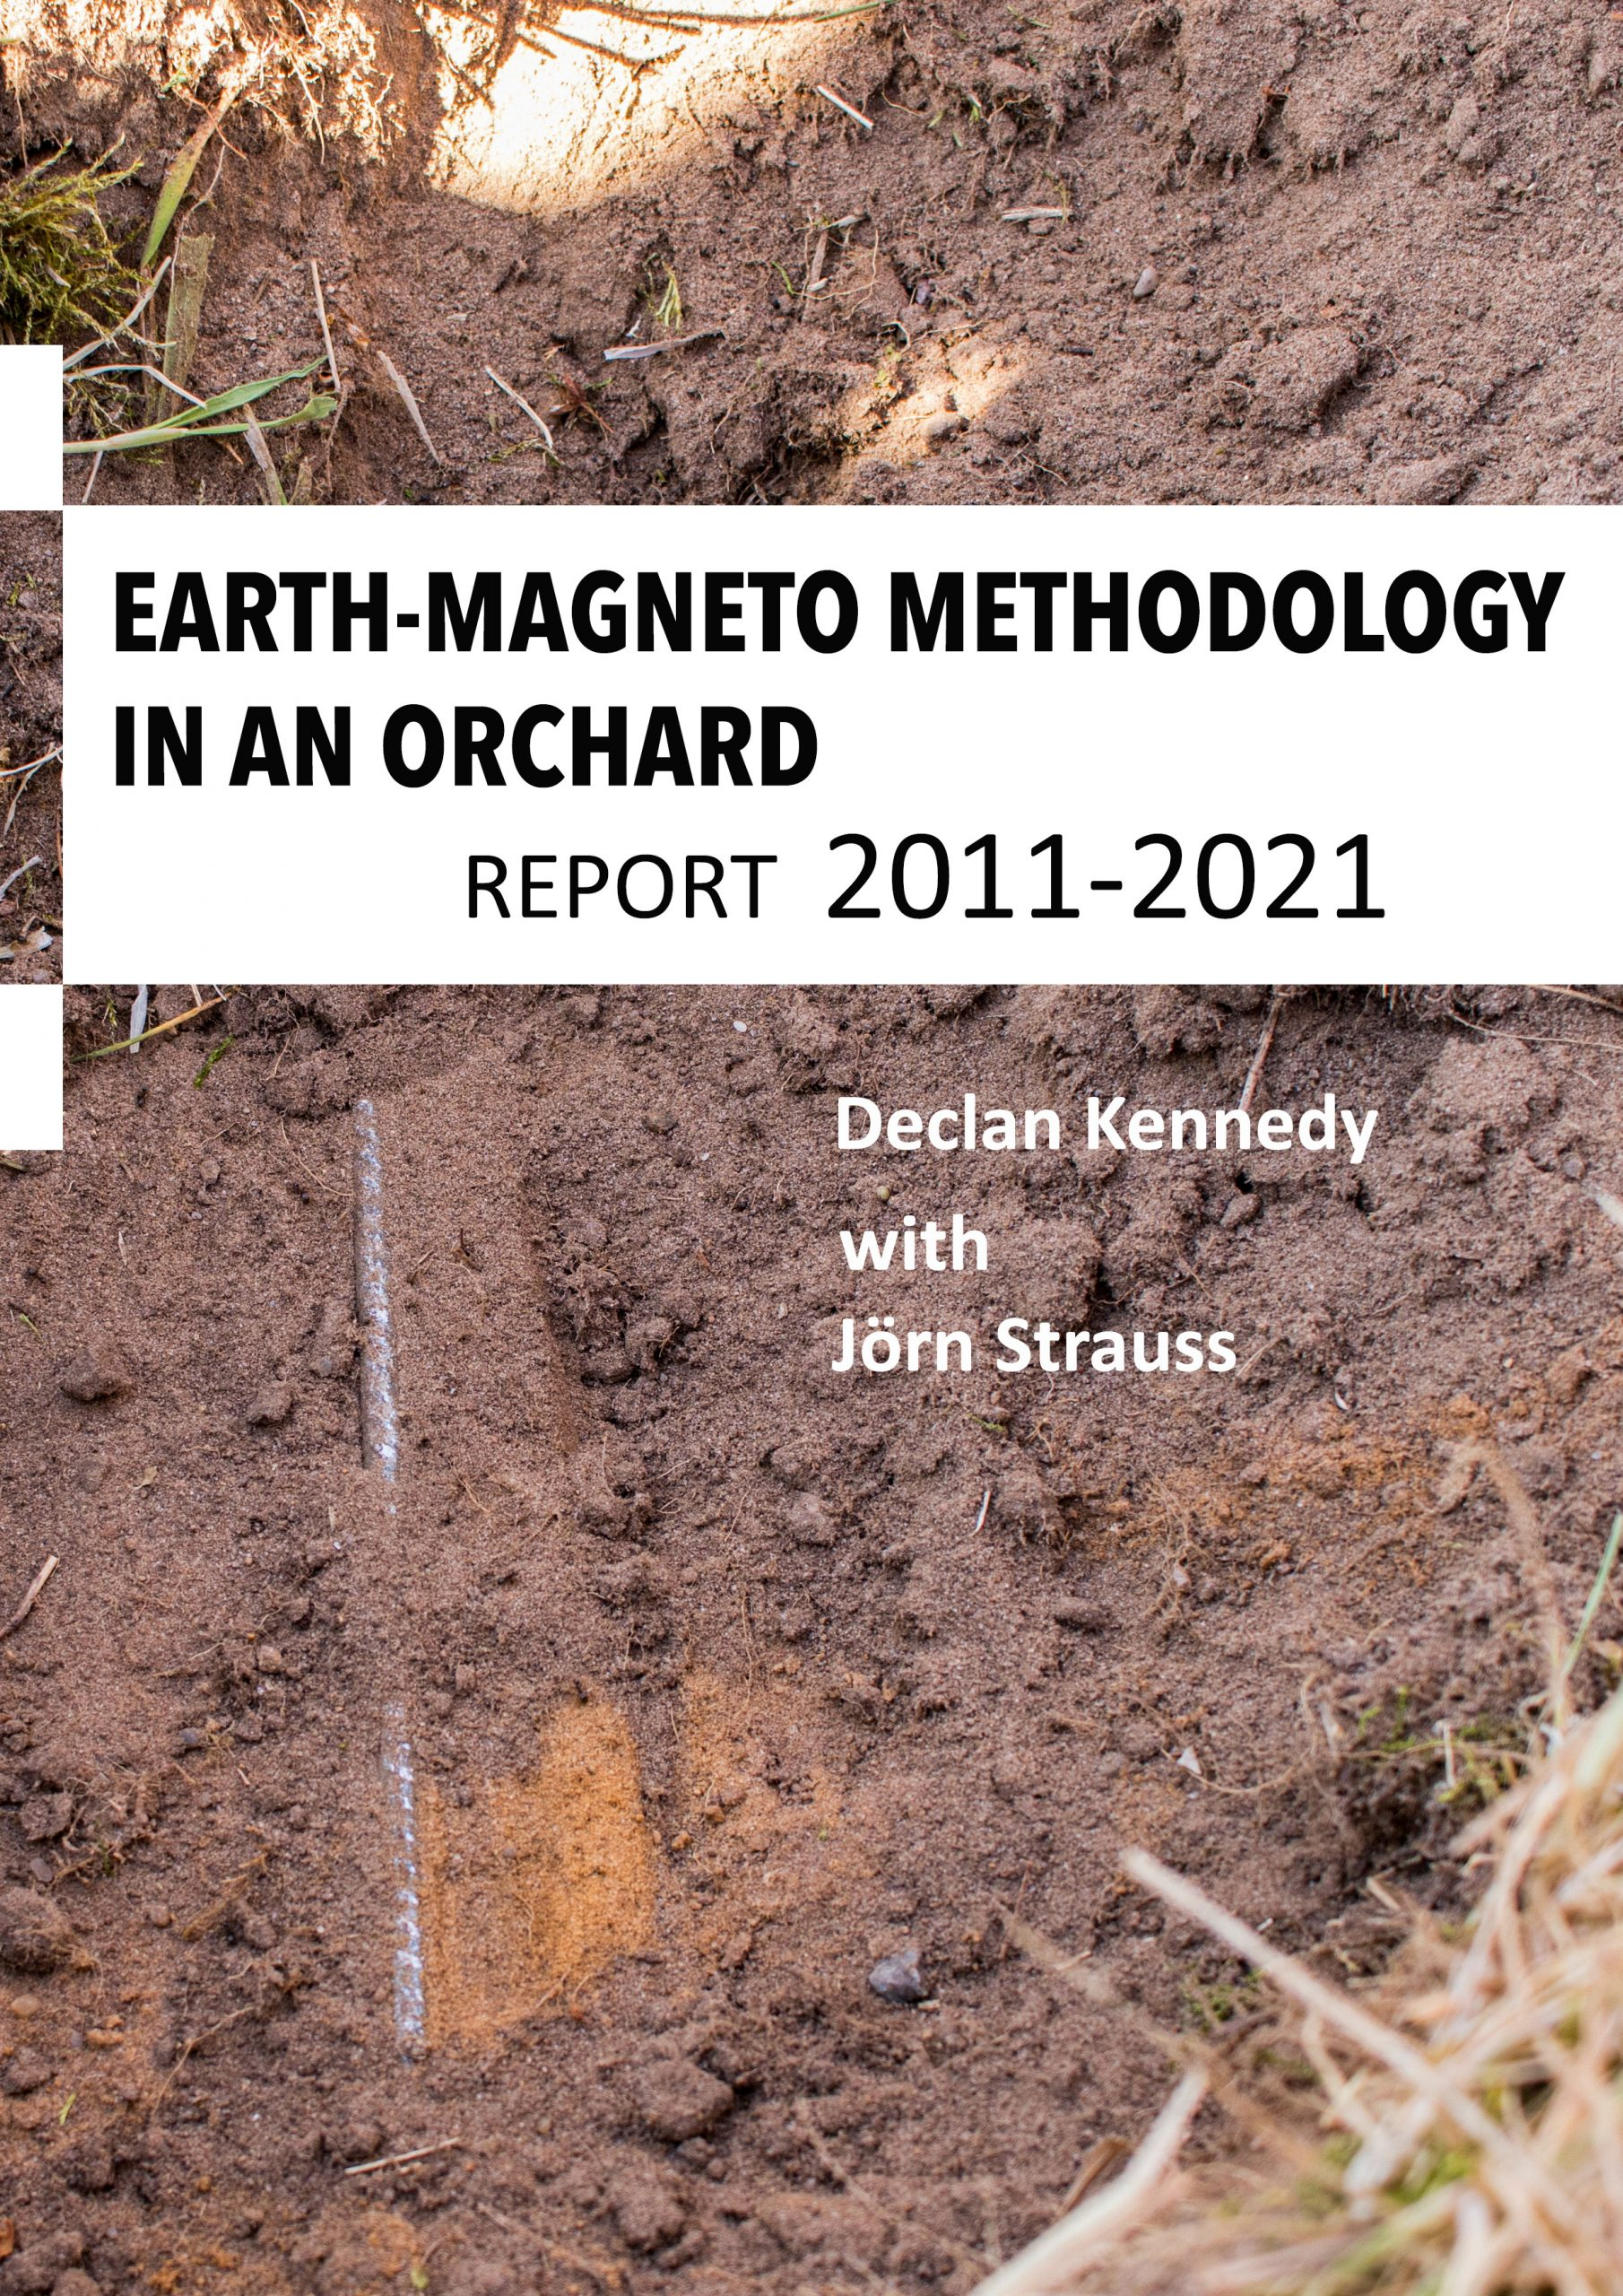 Earth-Magneto Methodology in an Orchard